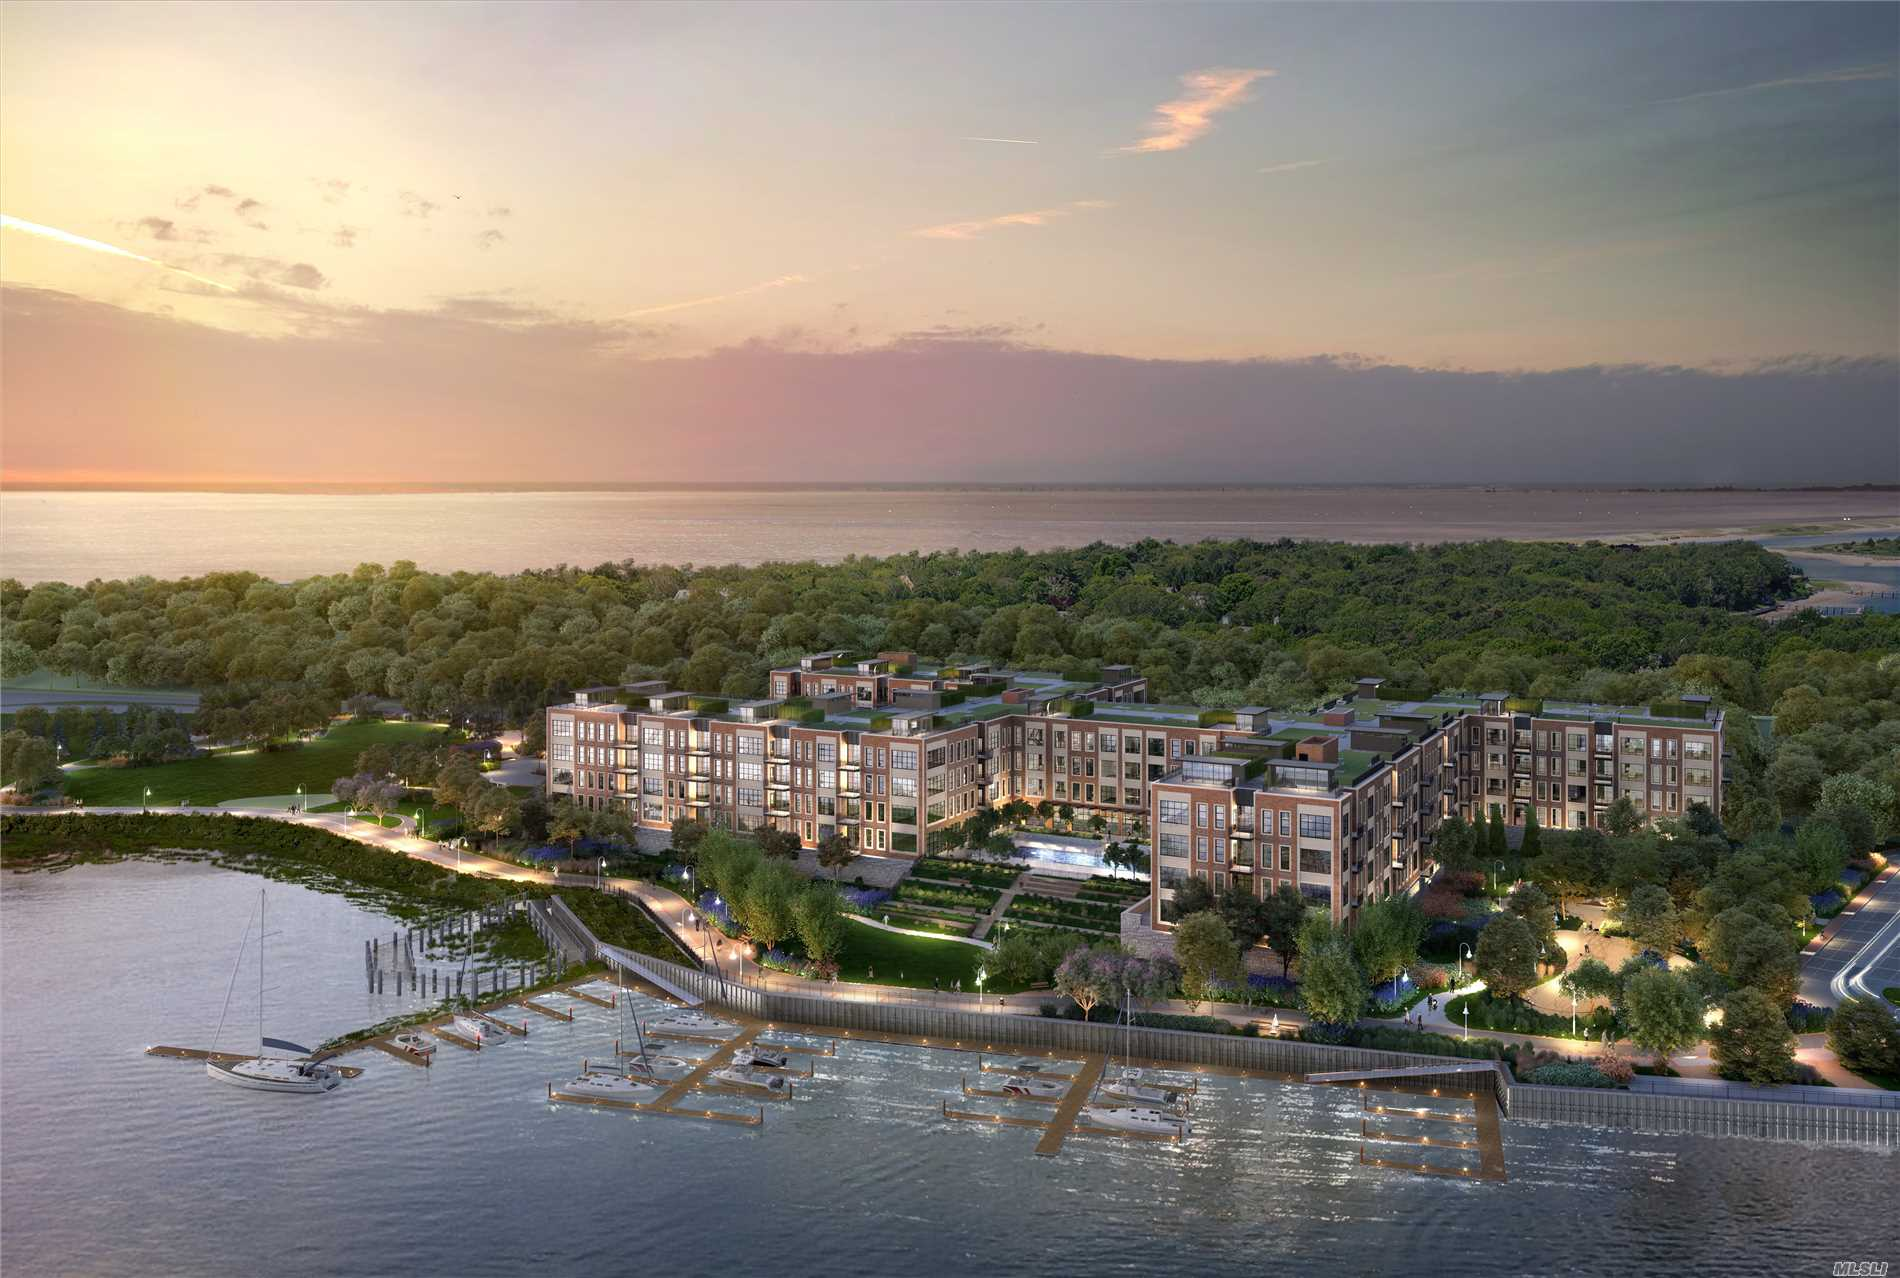 Property for sale at 100 Garvies Point Road # 1334, Glen Cove NY 11542, Glen Cove,  New York 11542